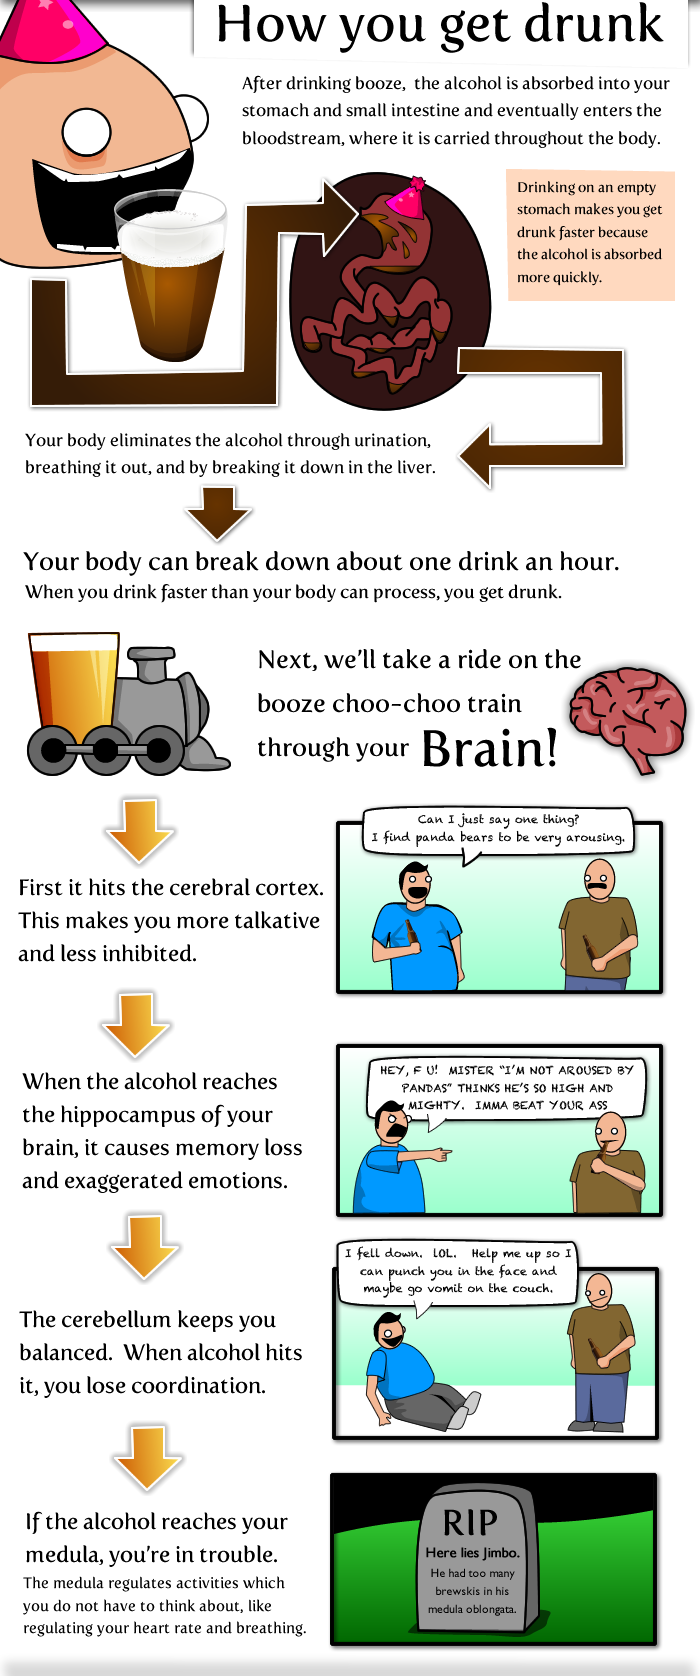 7 - 20 things worth knowing about beer!